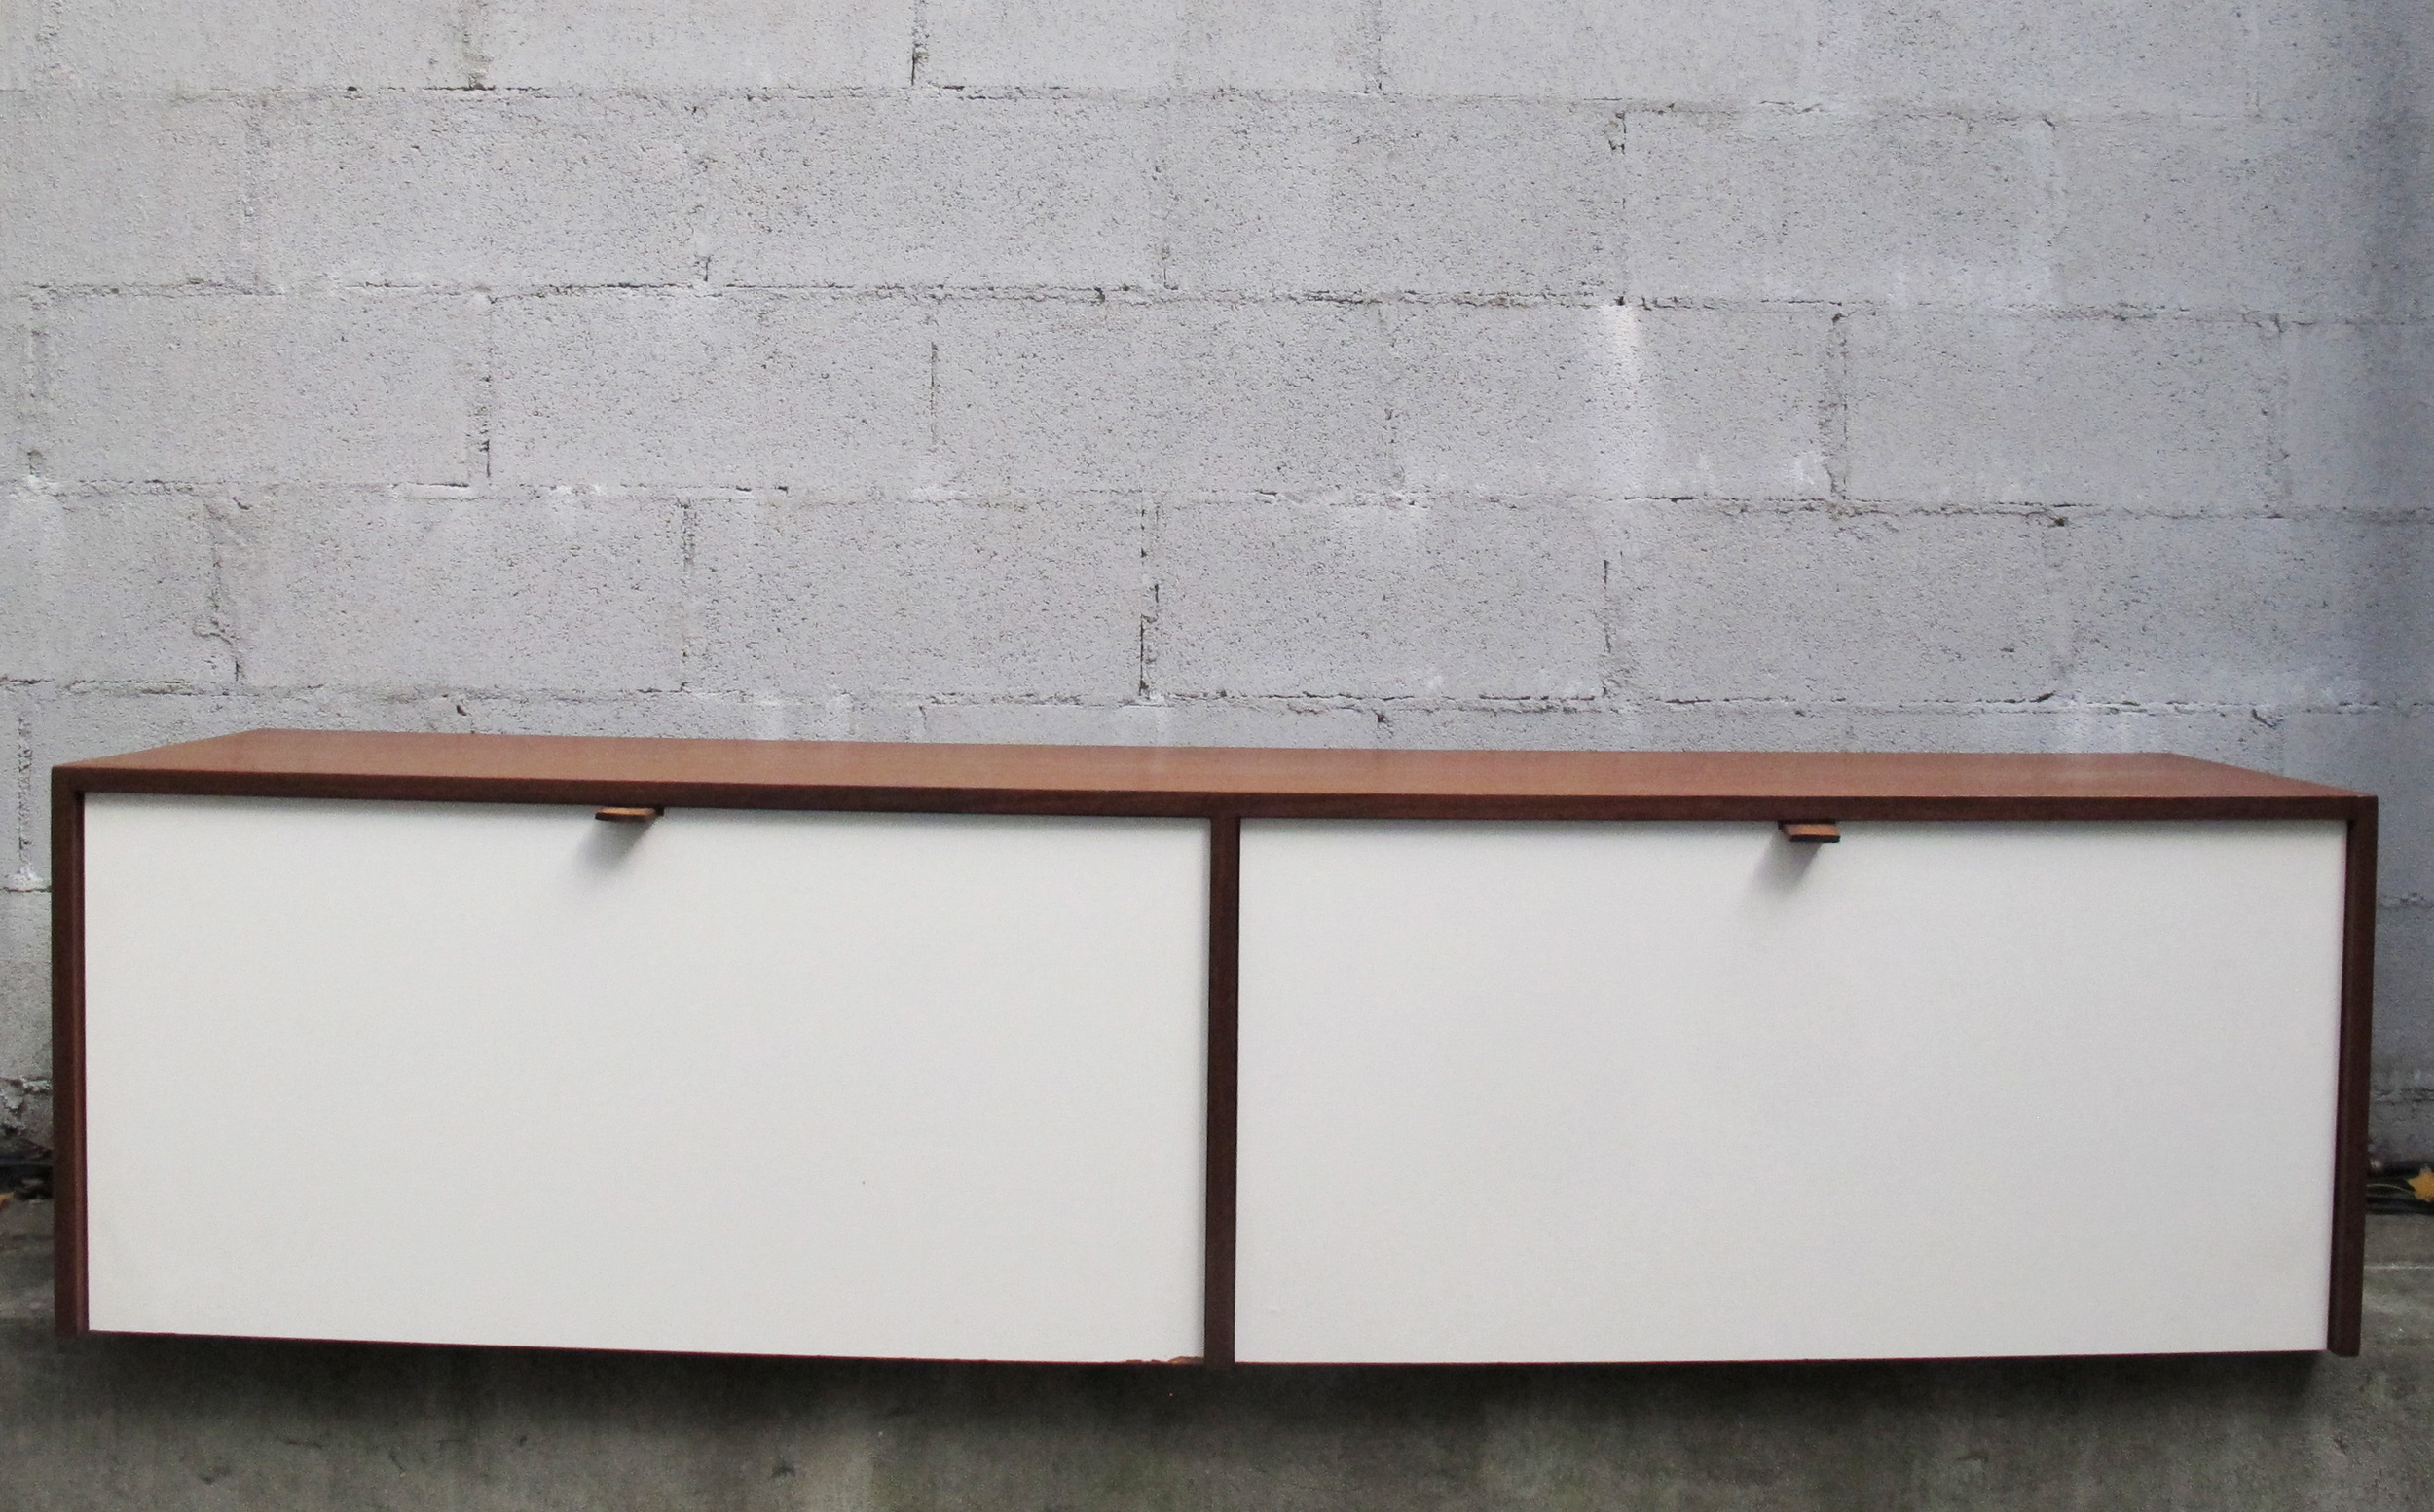 MID CENTURY WALNUT HANGING CABINET MODEL 121 W-1 BY FLORENCE KNOLL